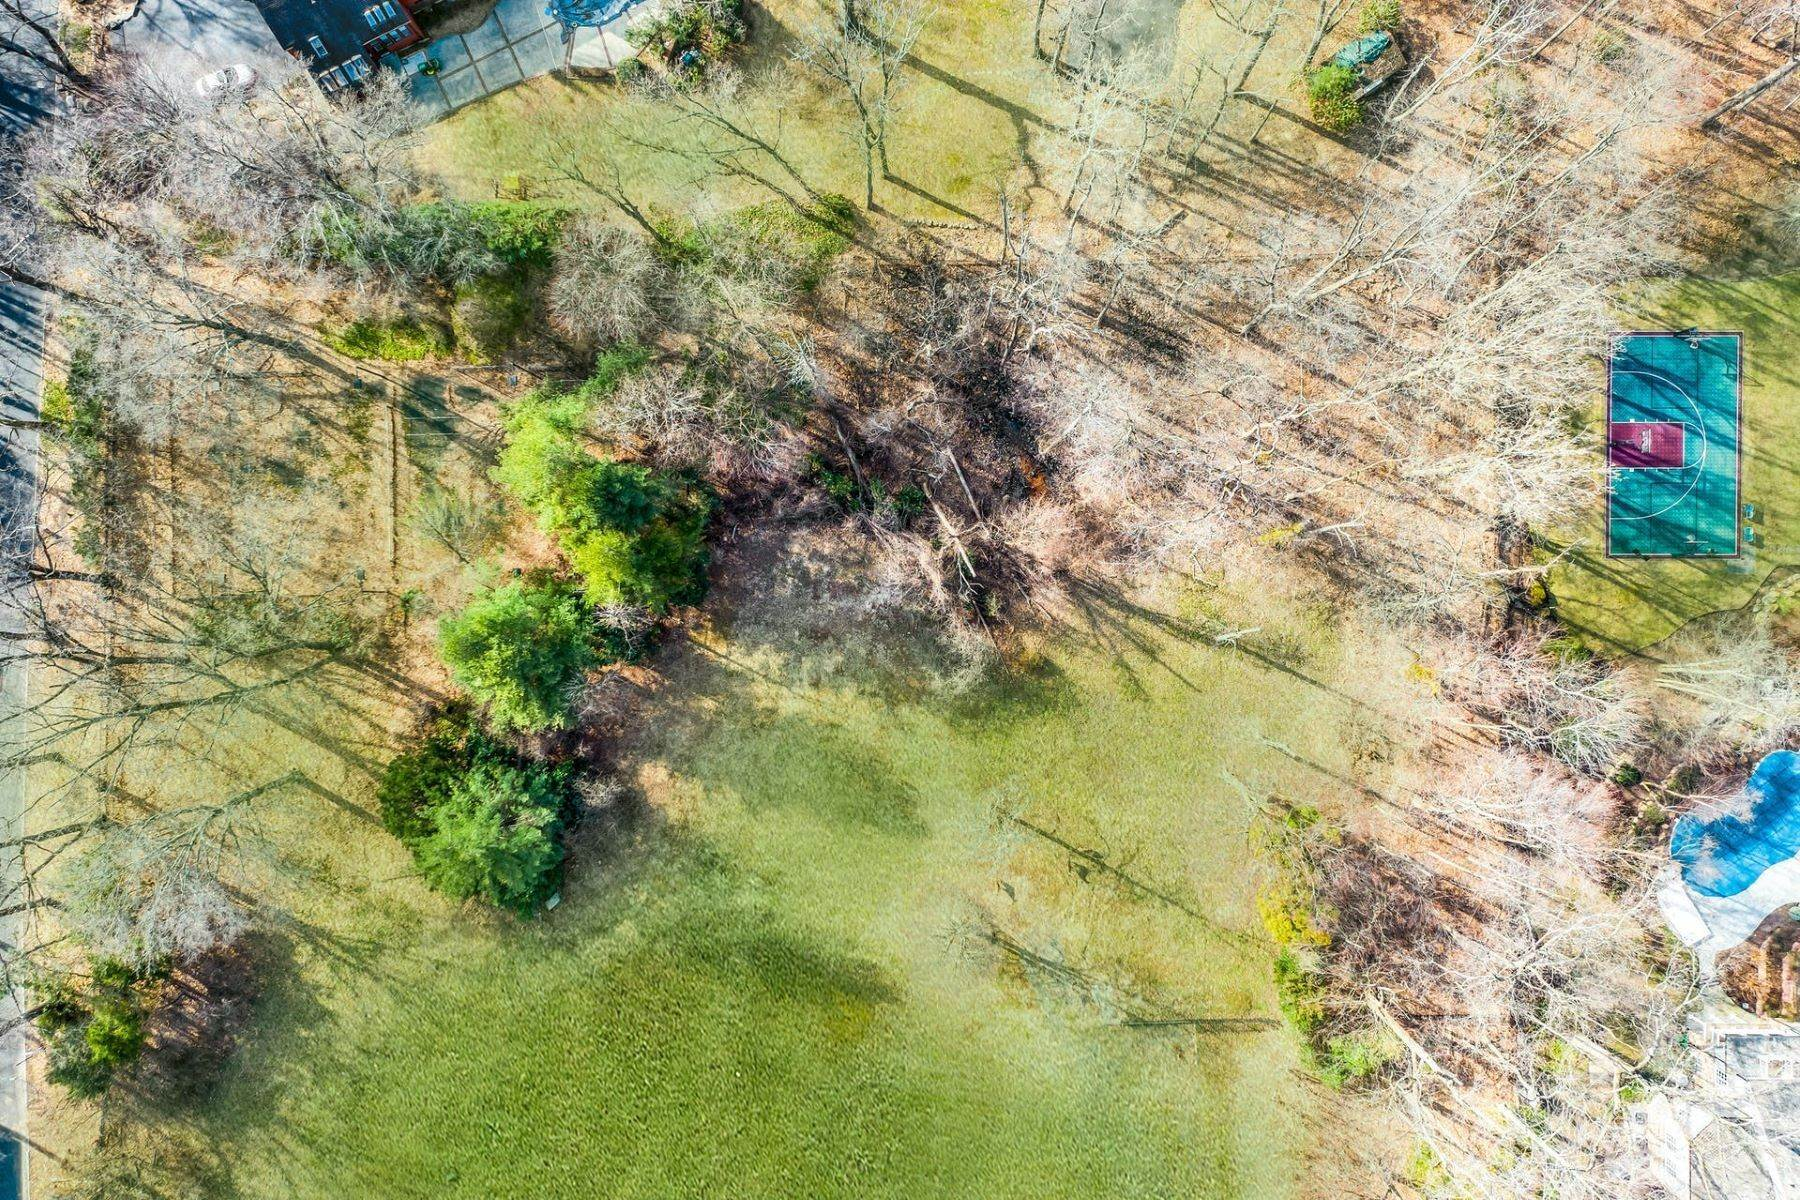 Land for Sale at Incredible Opportunity 46 Duane Ln Demarest, New Jersey 07627 United States